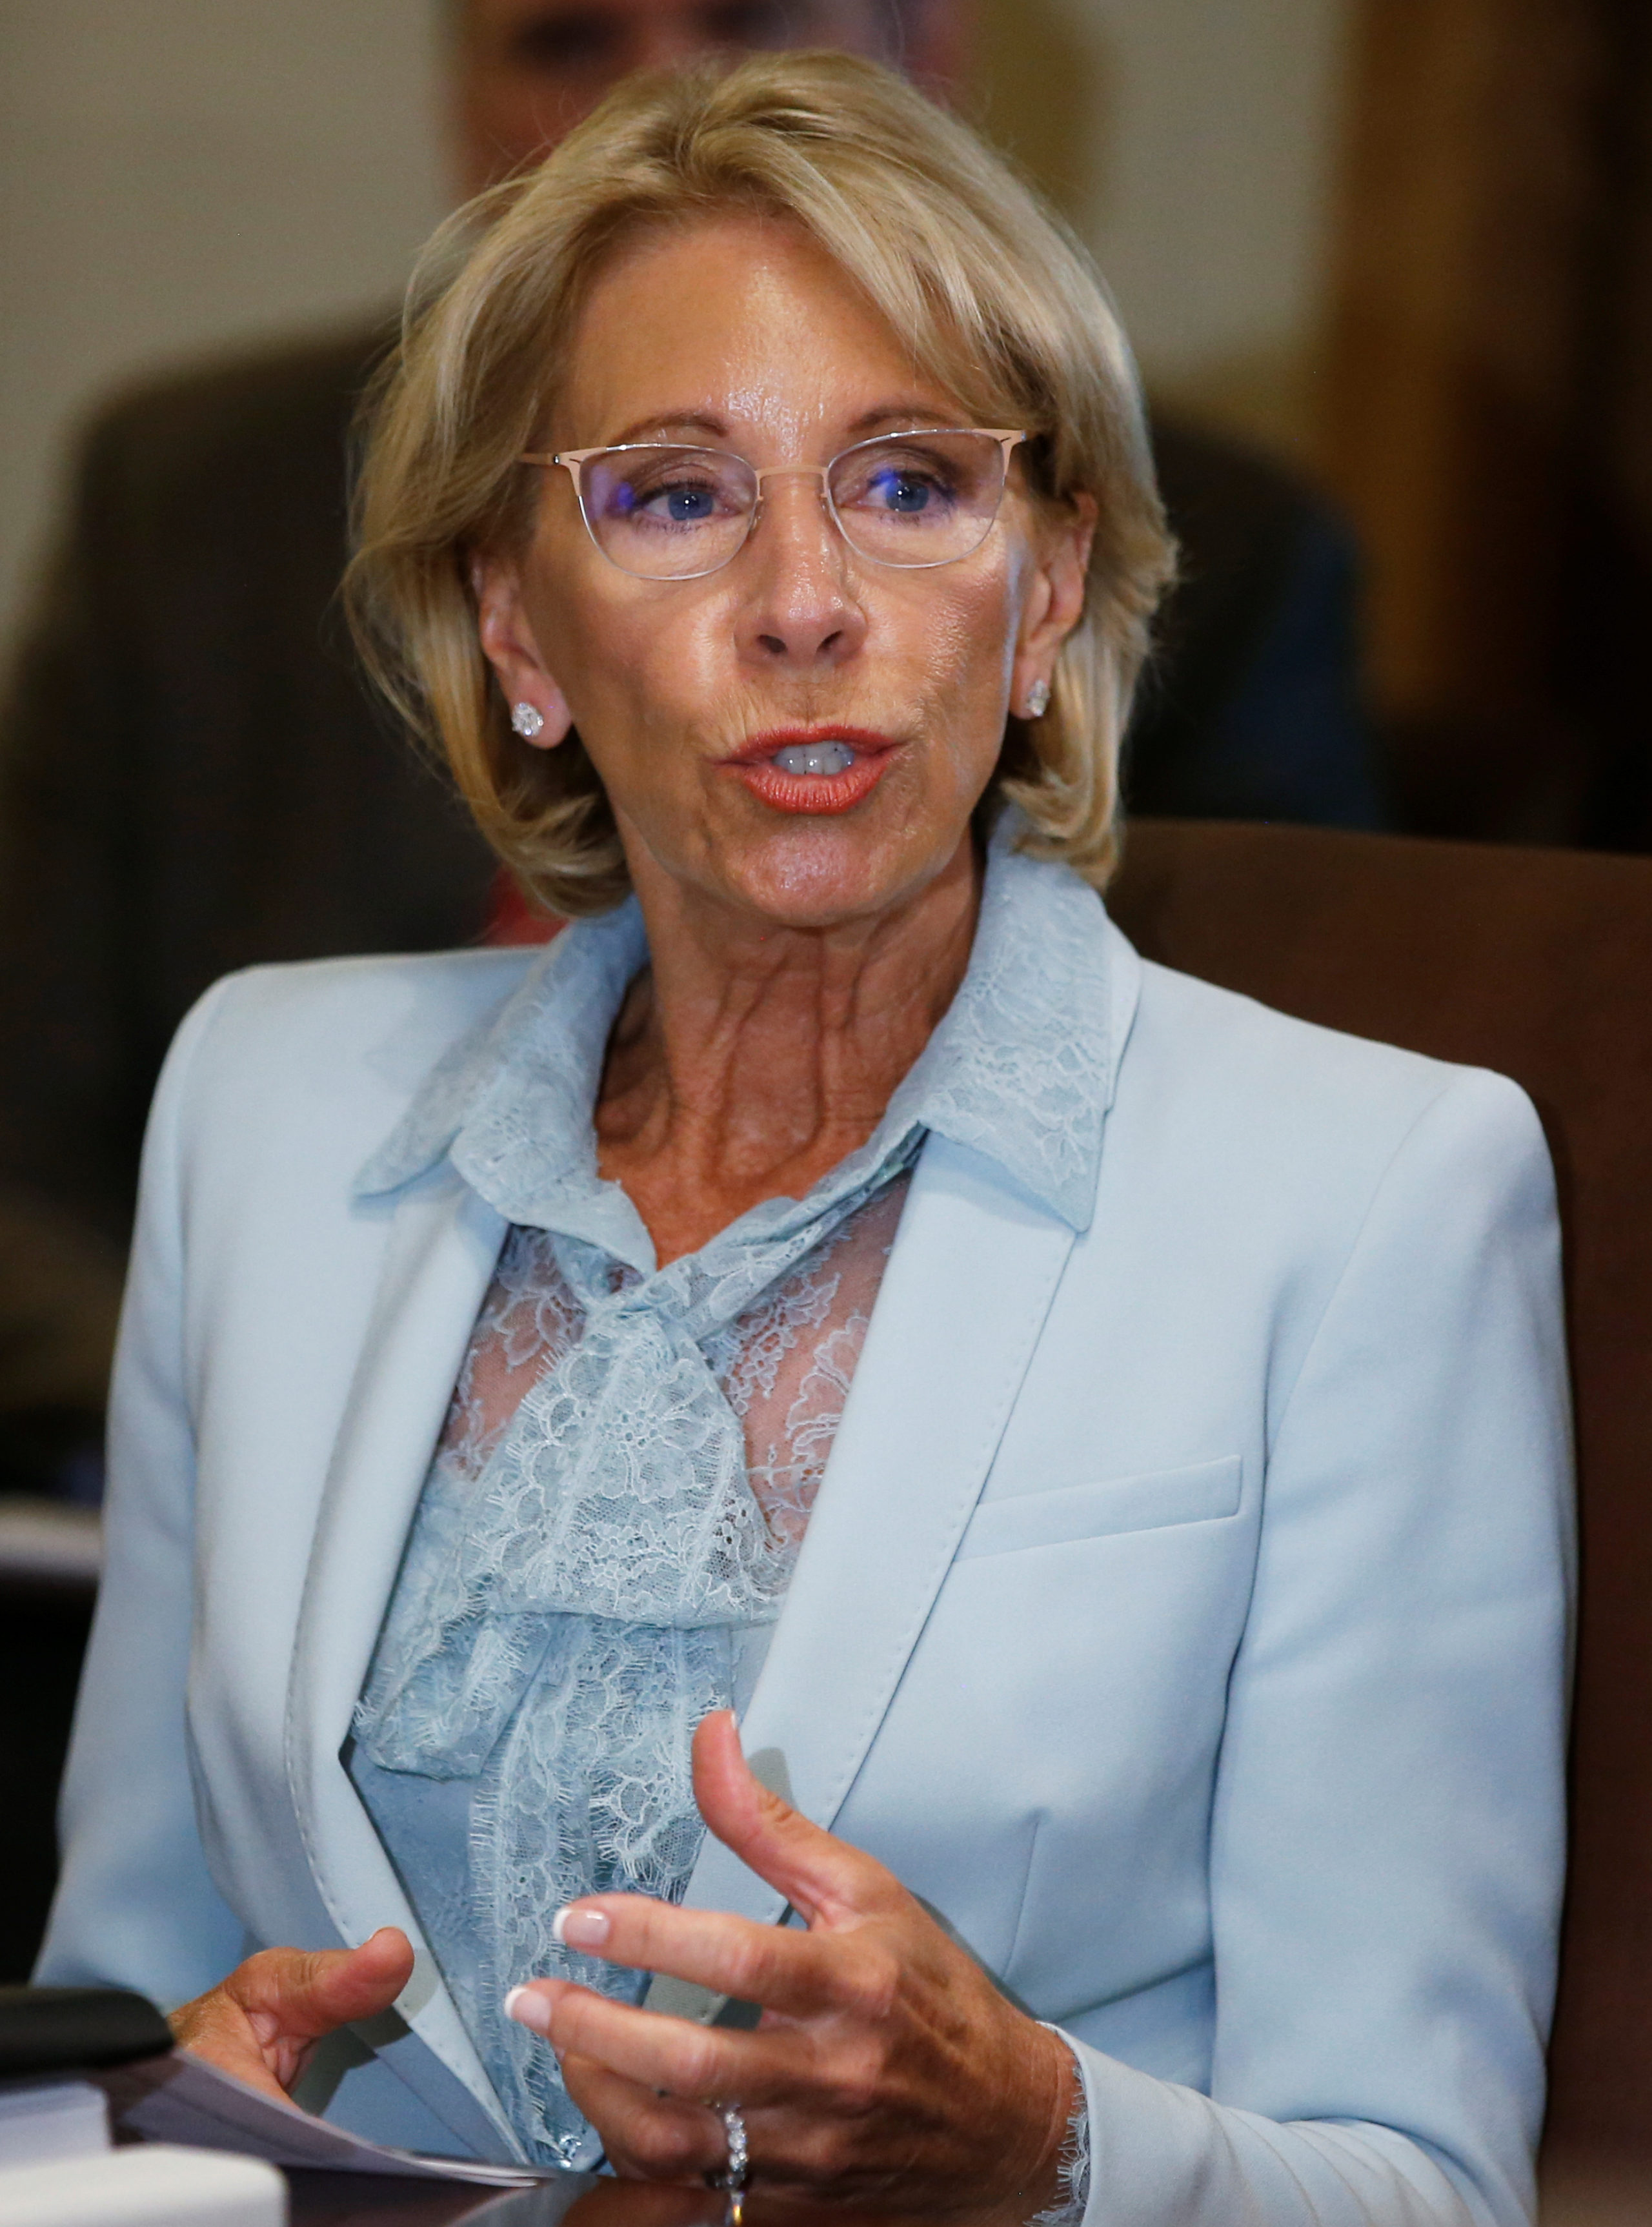 U.S. Education Secretary Betsy Devos attends a cabinet meeting at the White House in Washington, U.S., July 18, 2018. REUTERS/Leah Millis